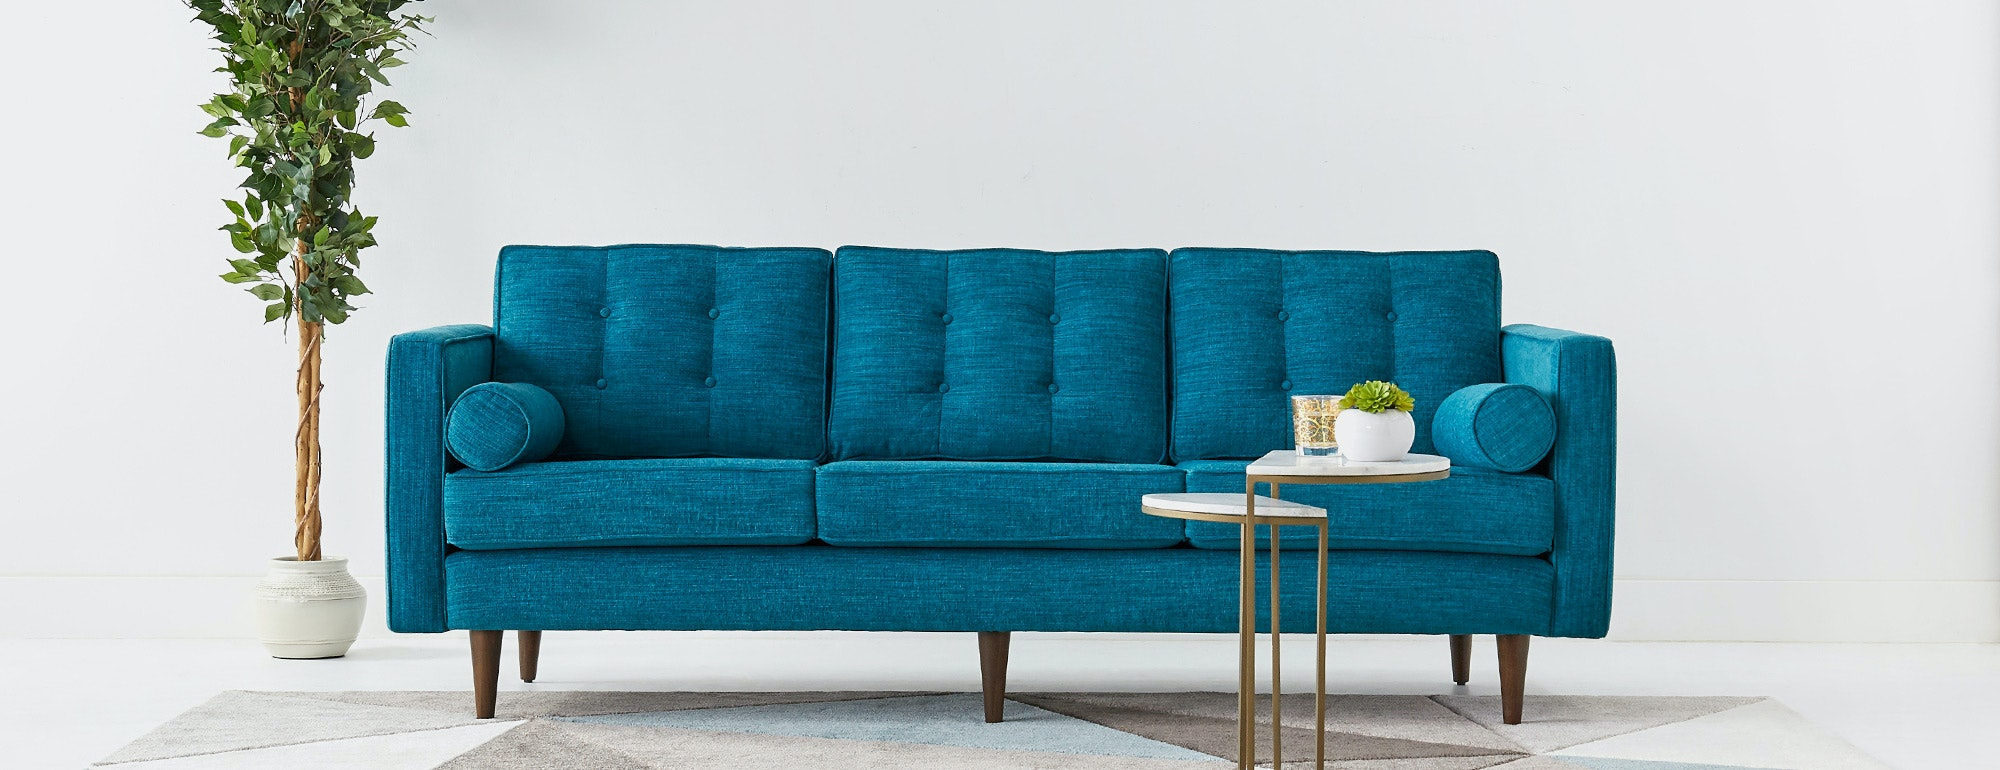 Aqua Leather Sofa Cindy Crawford Home Marcella Spa Blue